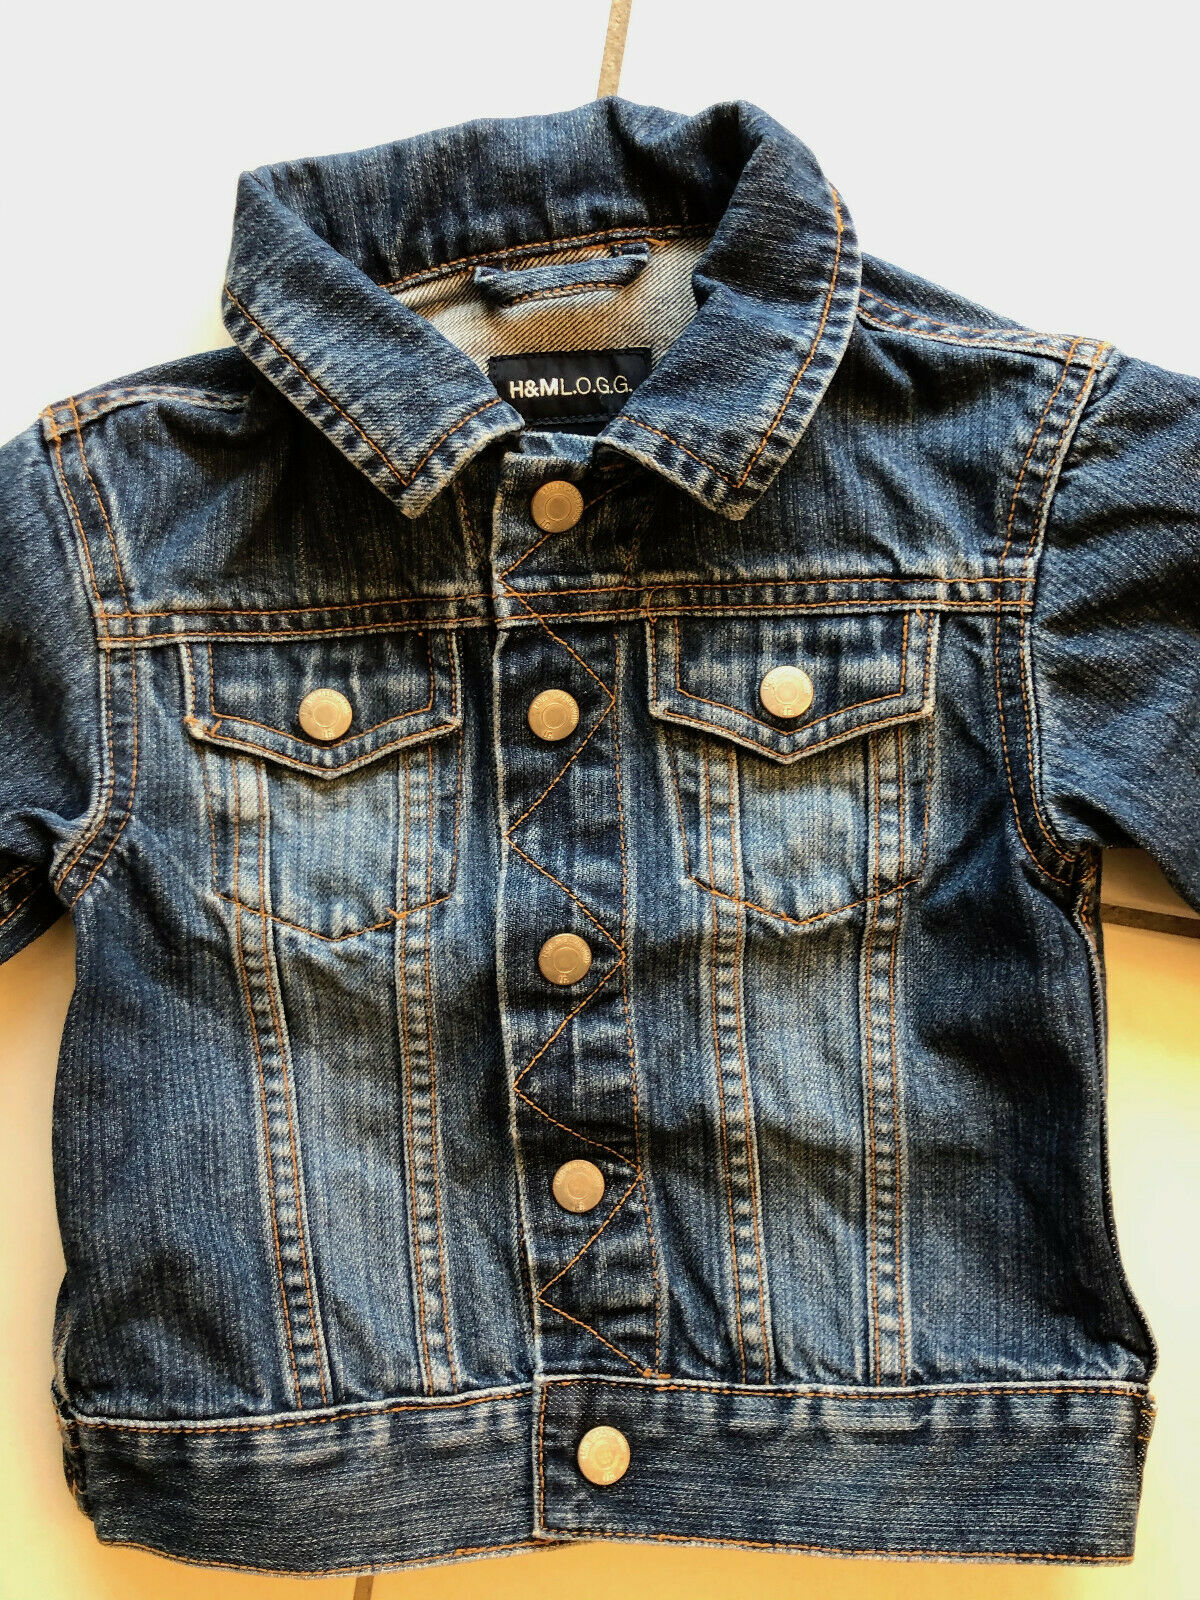 college jacke baby h&